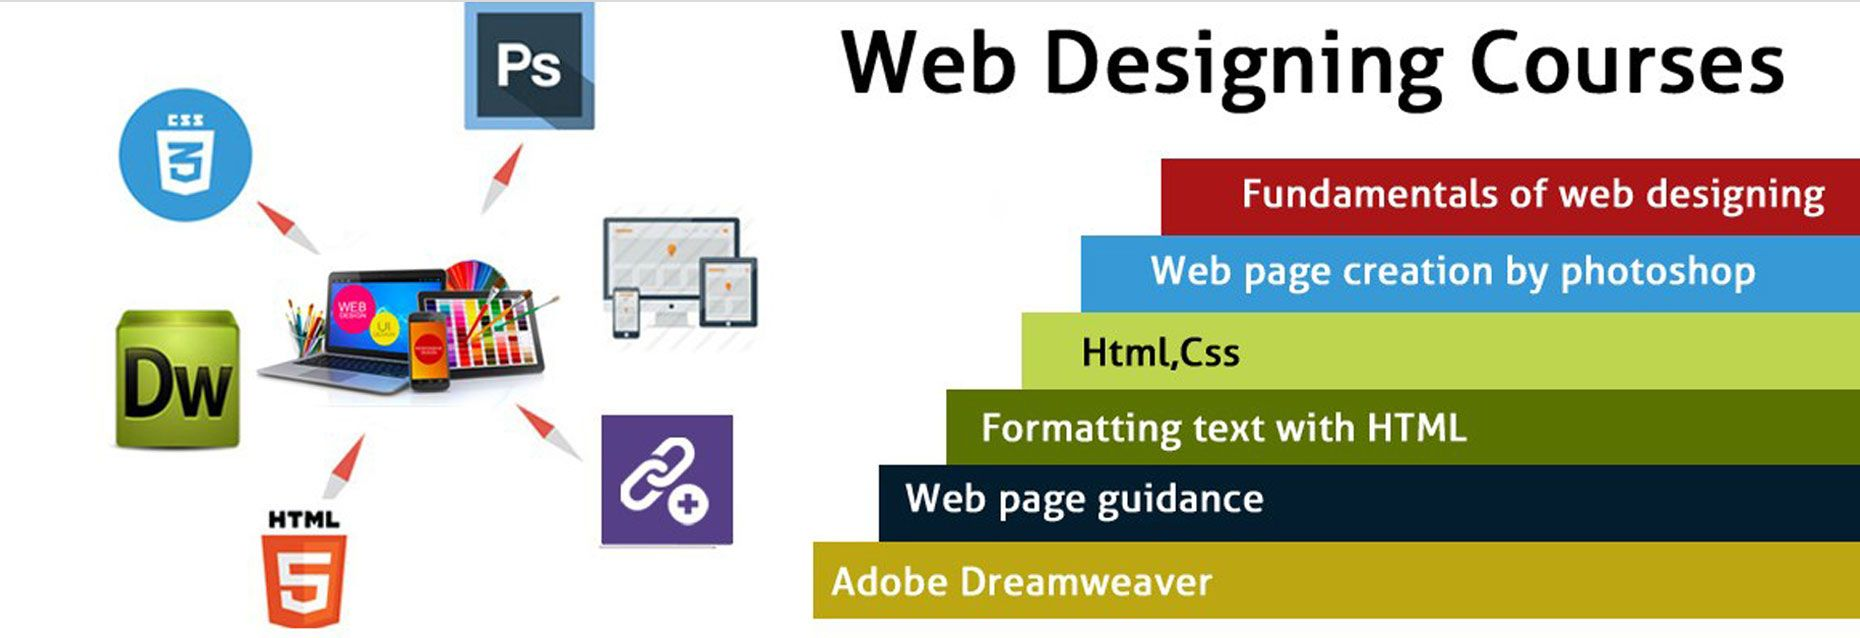 Web Design Courses Web Designing Training In Chandigarh Offer By Imesh Lab Best Web Designin Web Design Training Web Design Course Web Development Training